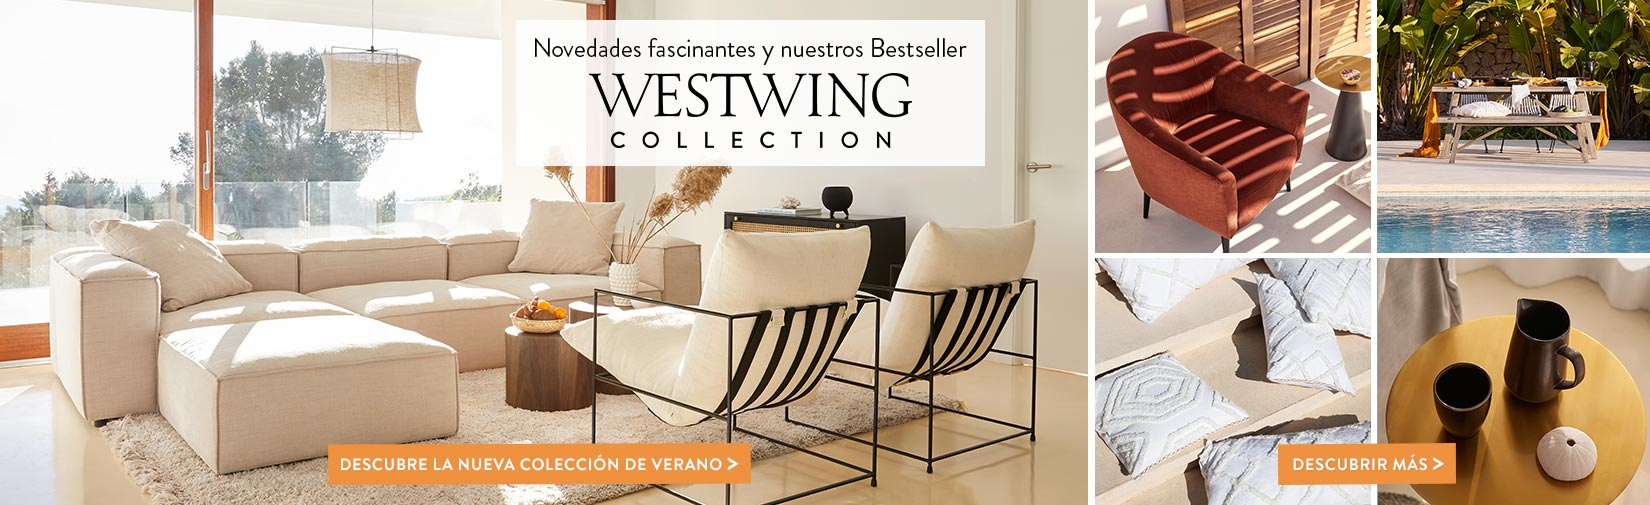 LP-Westwing-Collection_Verano